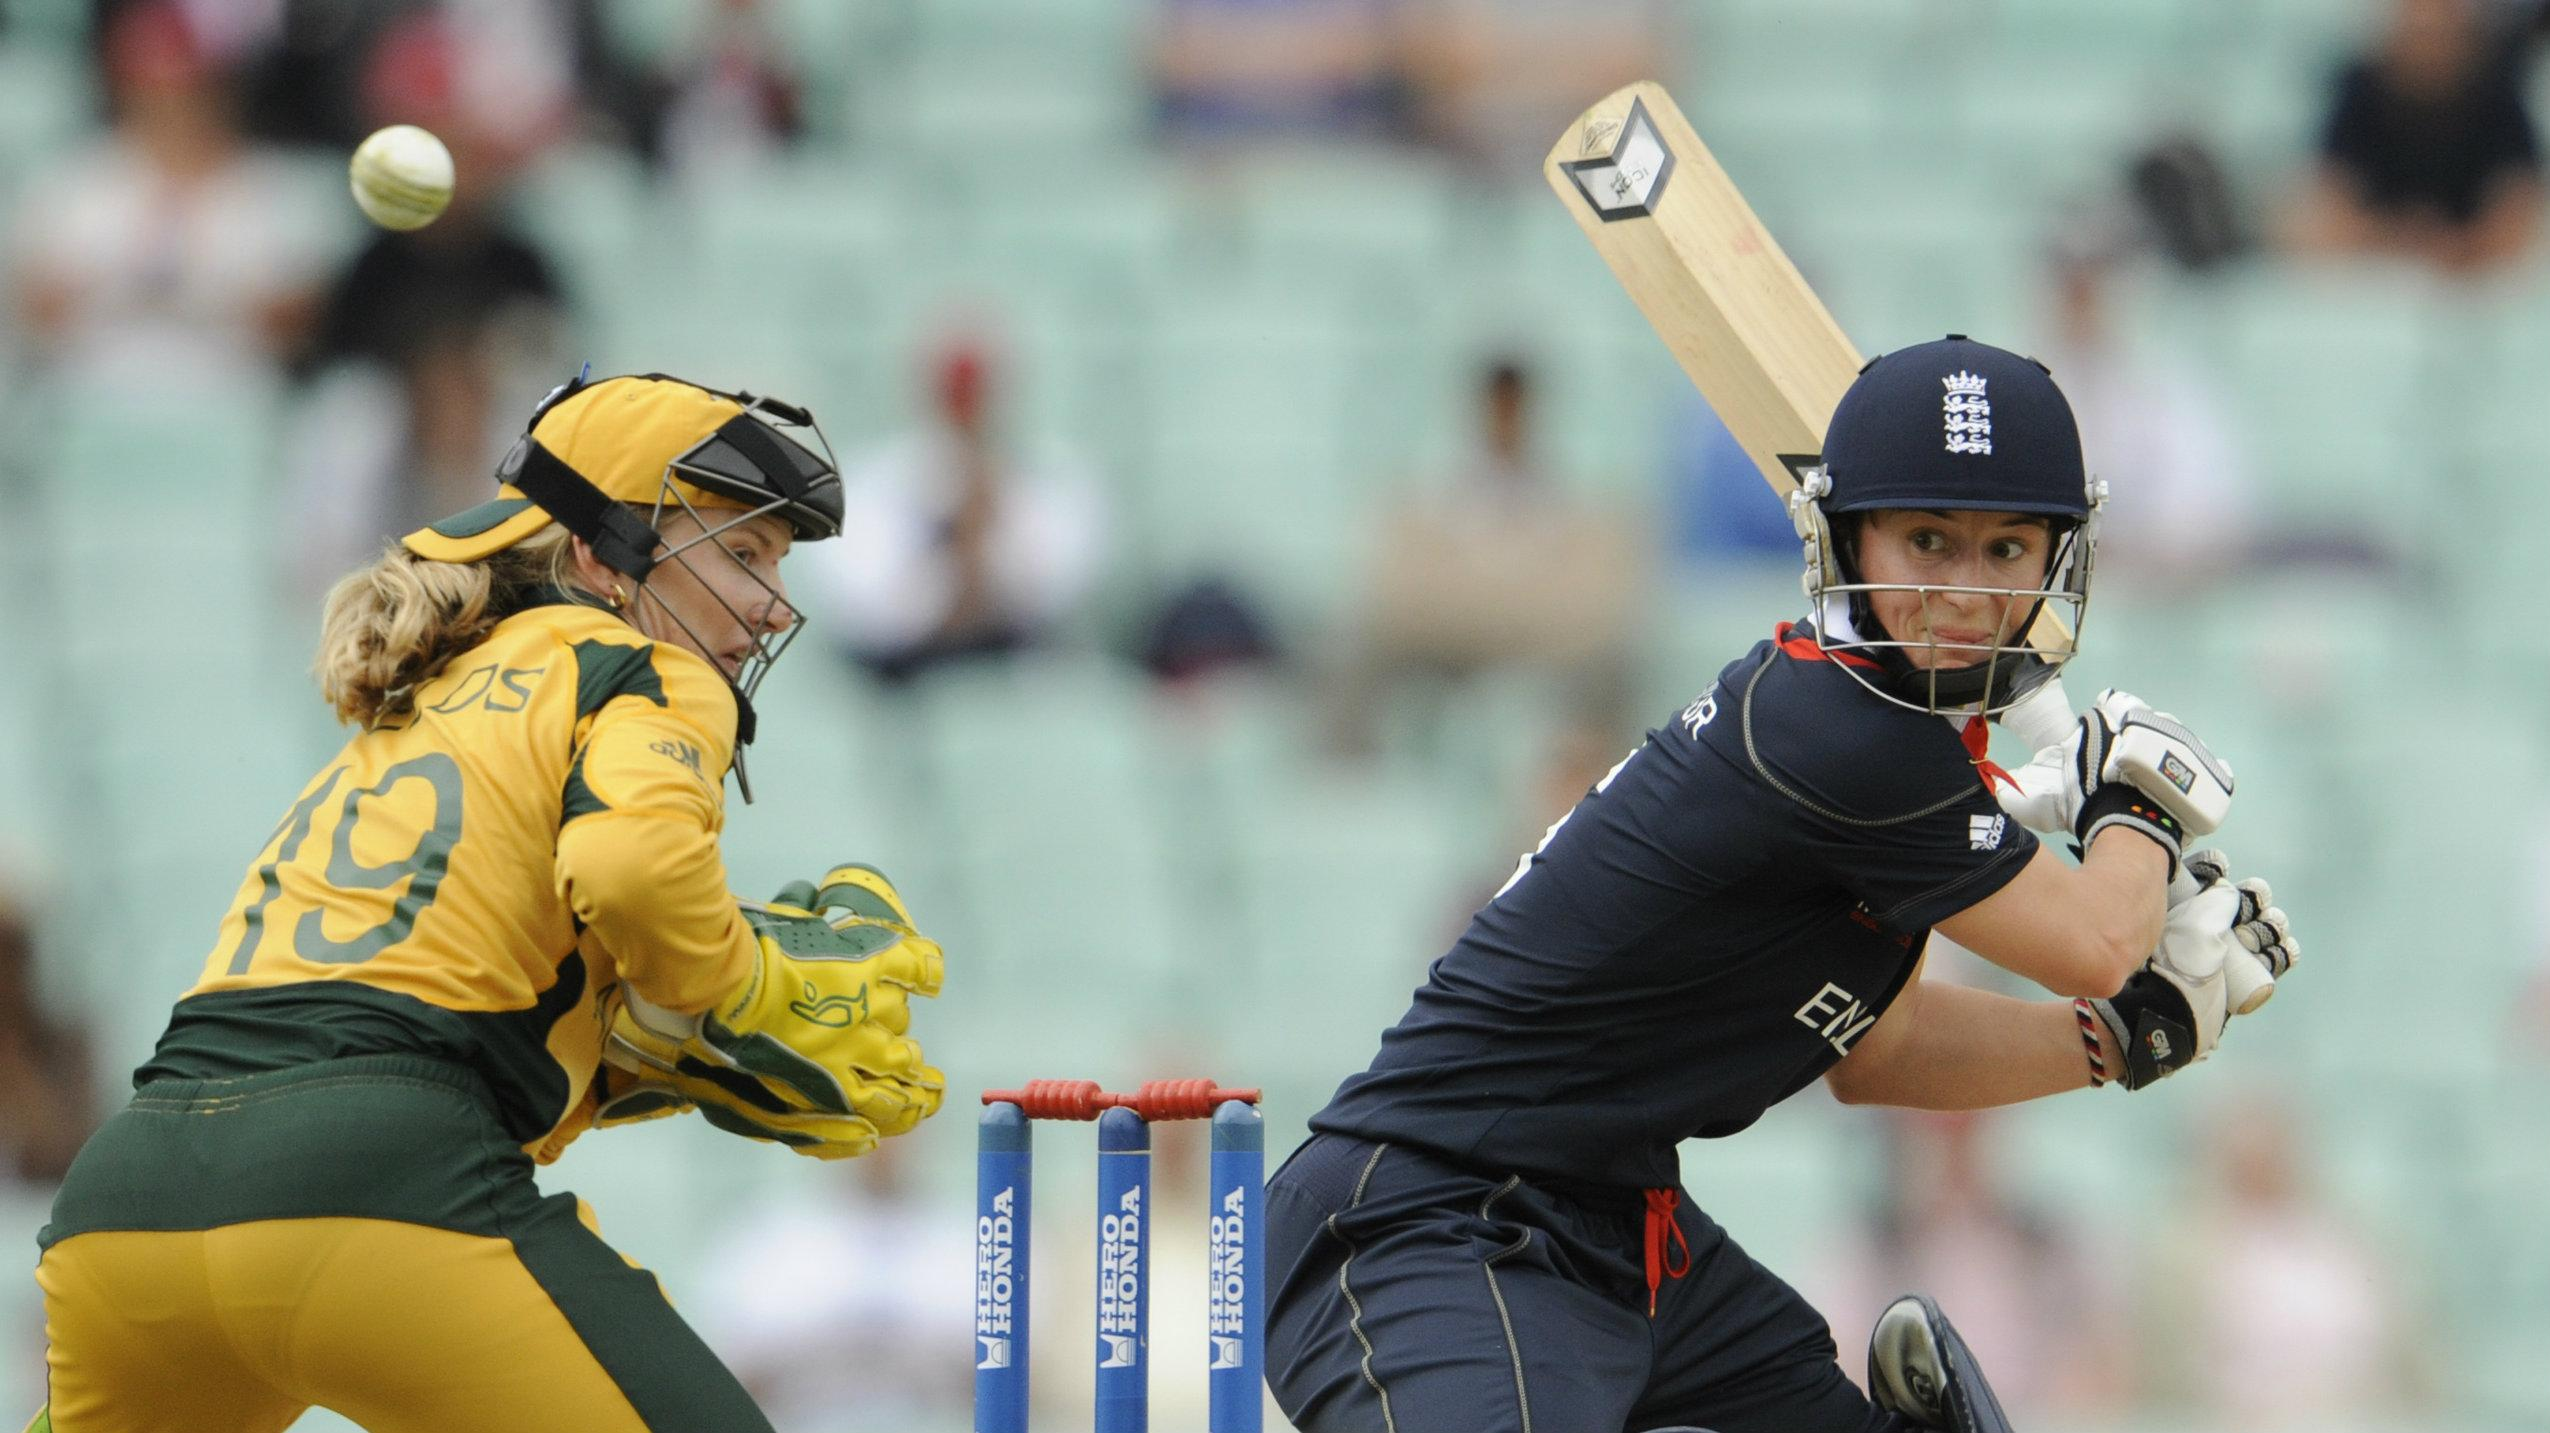 cricket england icc australia squad womens face t20 against highlights t20i pic team ashes announces member its changing